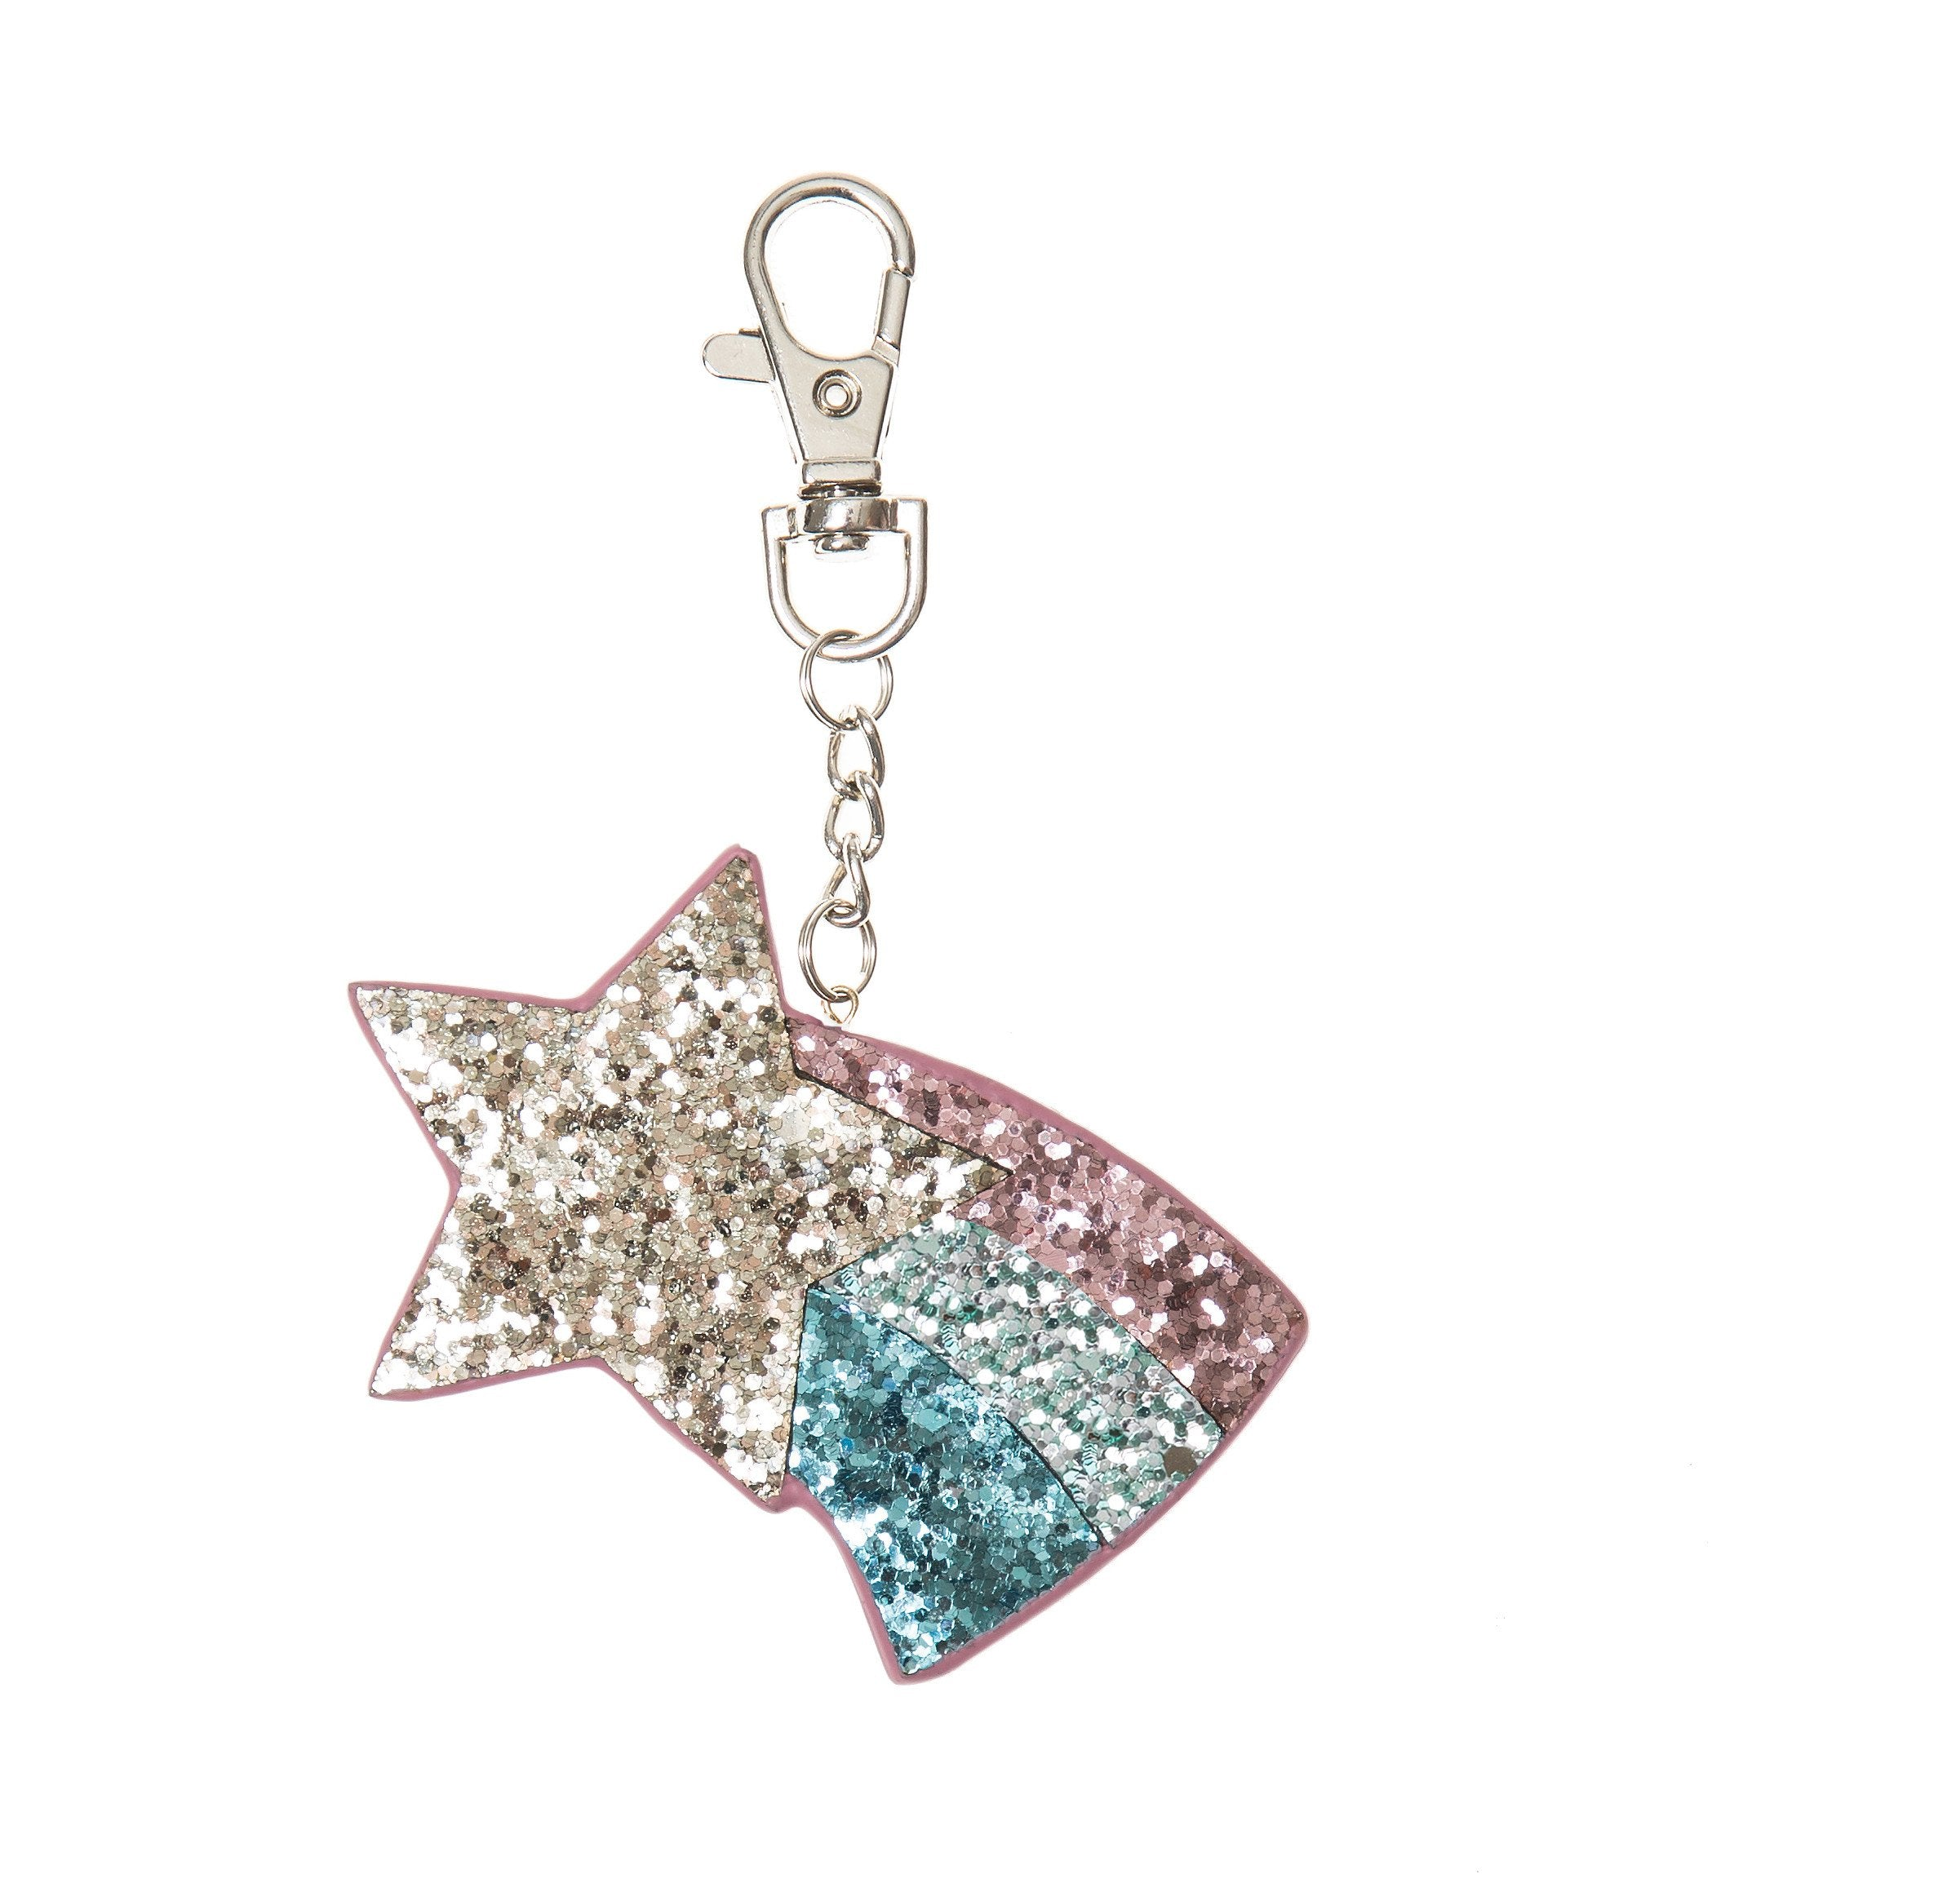 Star Bag Charm by Rockahula